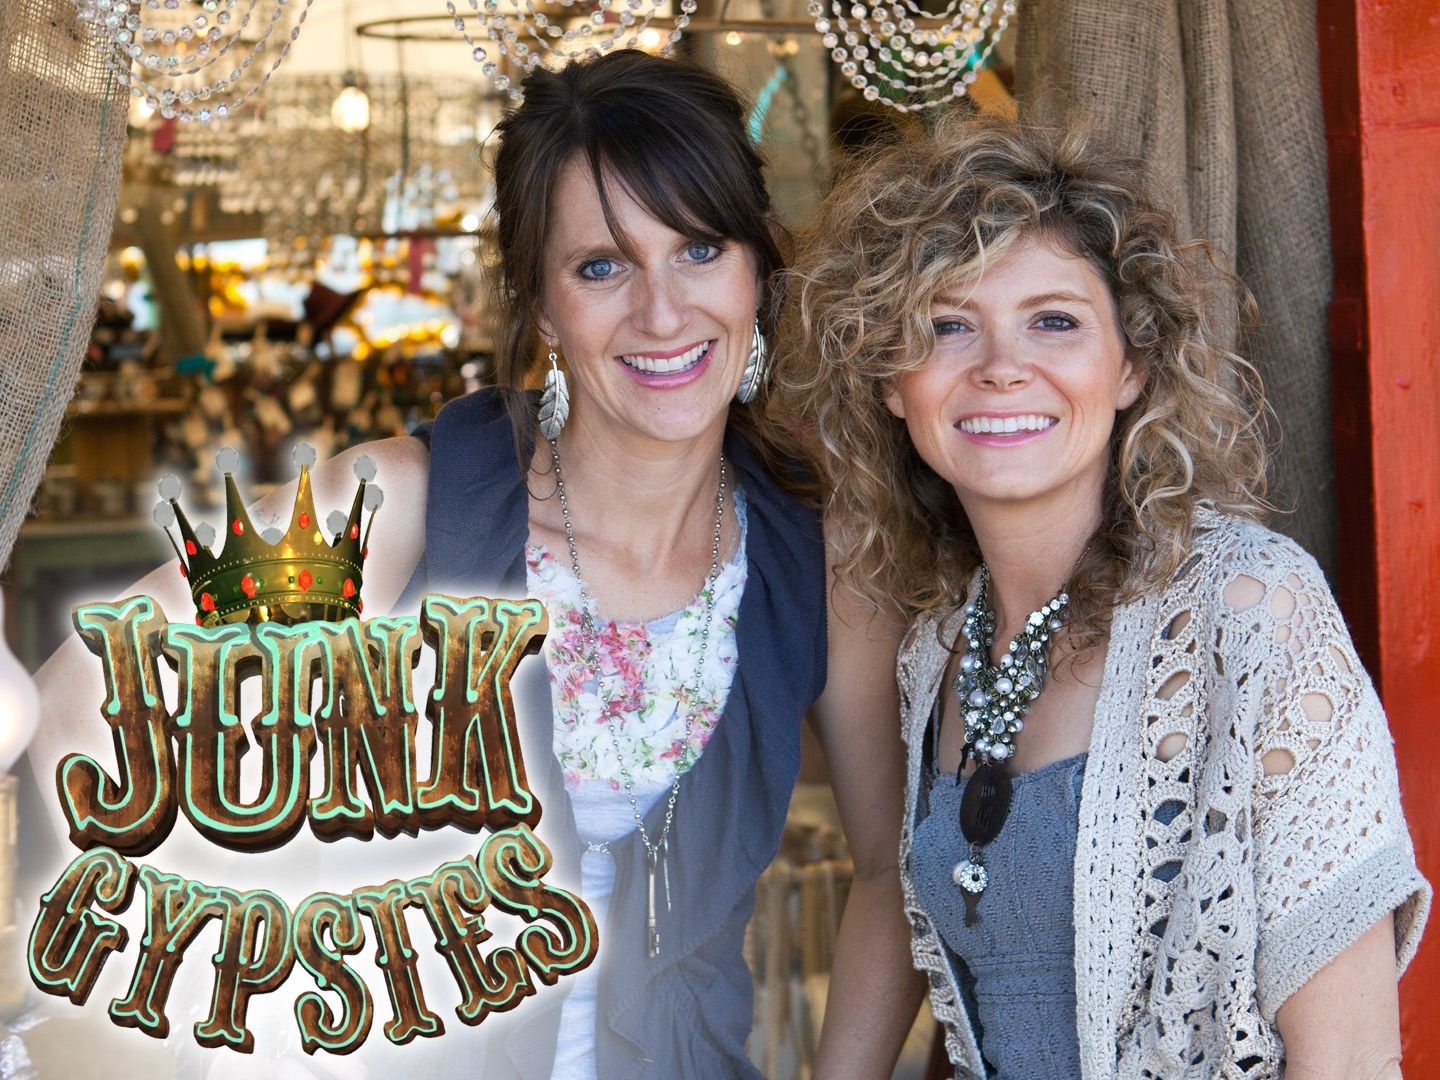 Junk Gypsies (TV show).. I would love to be a Junk Gypsy...